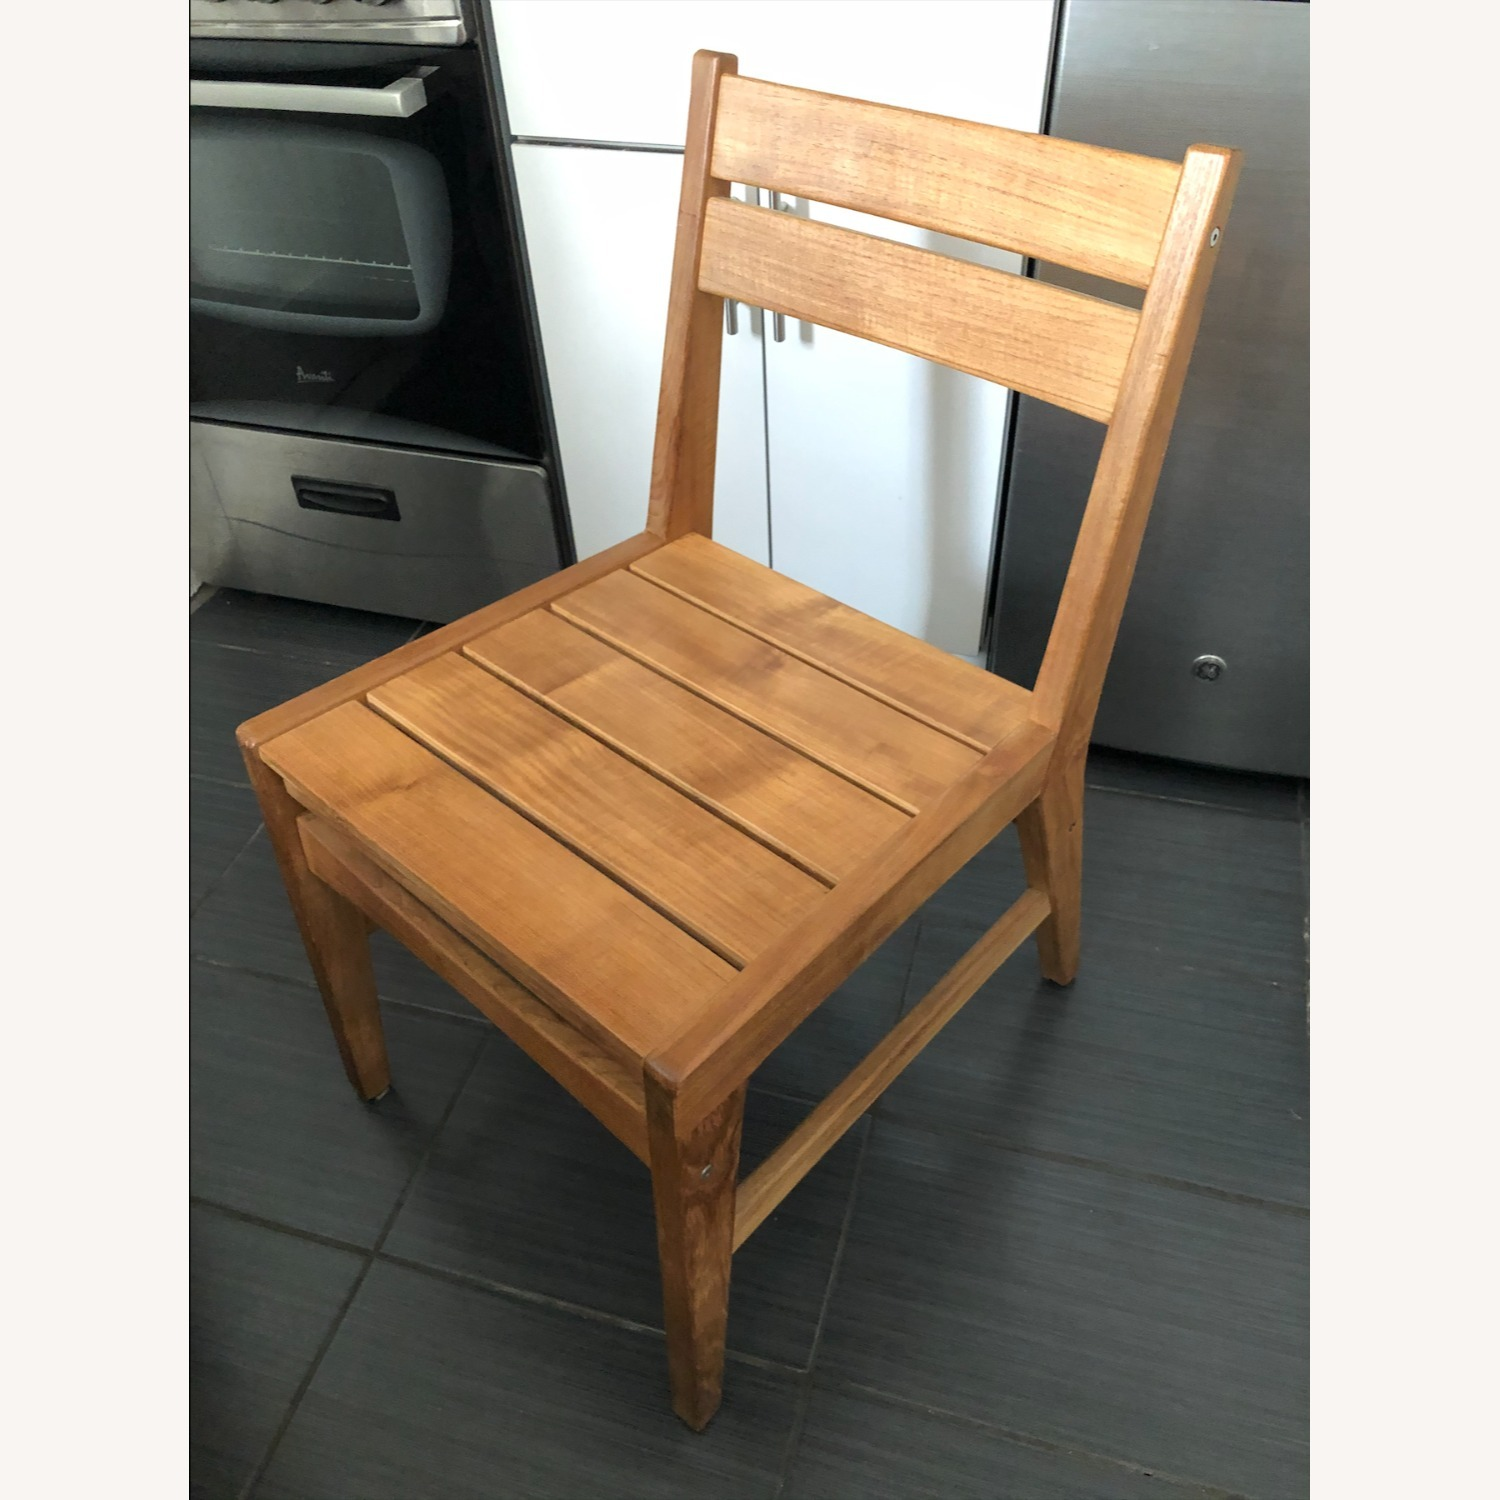 West Elm Wooden Chairs (Set of 2) - image-1